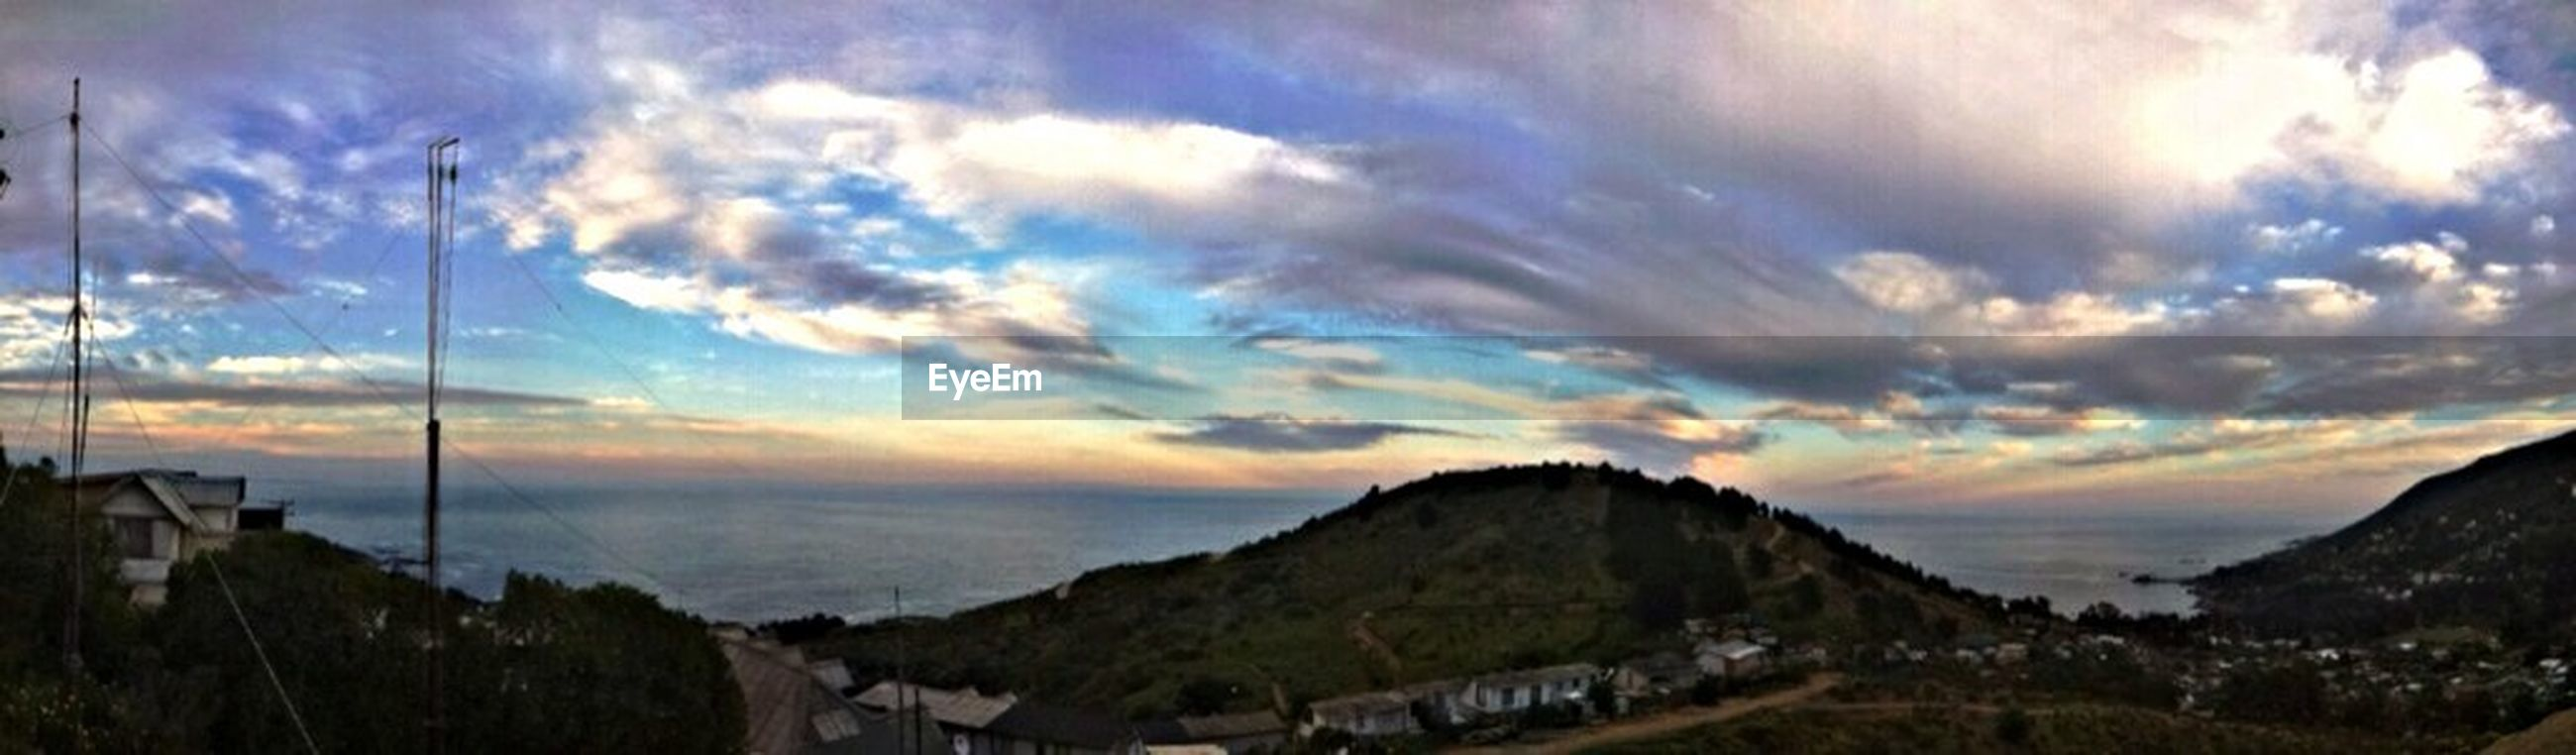 mountain, sky, cloud - sky, scenics, tranquil scene, beauty in nature, tranquility, cloudy, mountain range, sunset, landscape, cloud, nature, idyllic, non-urban scene, dramatic sky, panoramic, weather, outdoors, no people